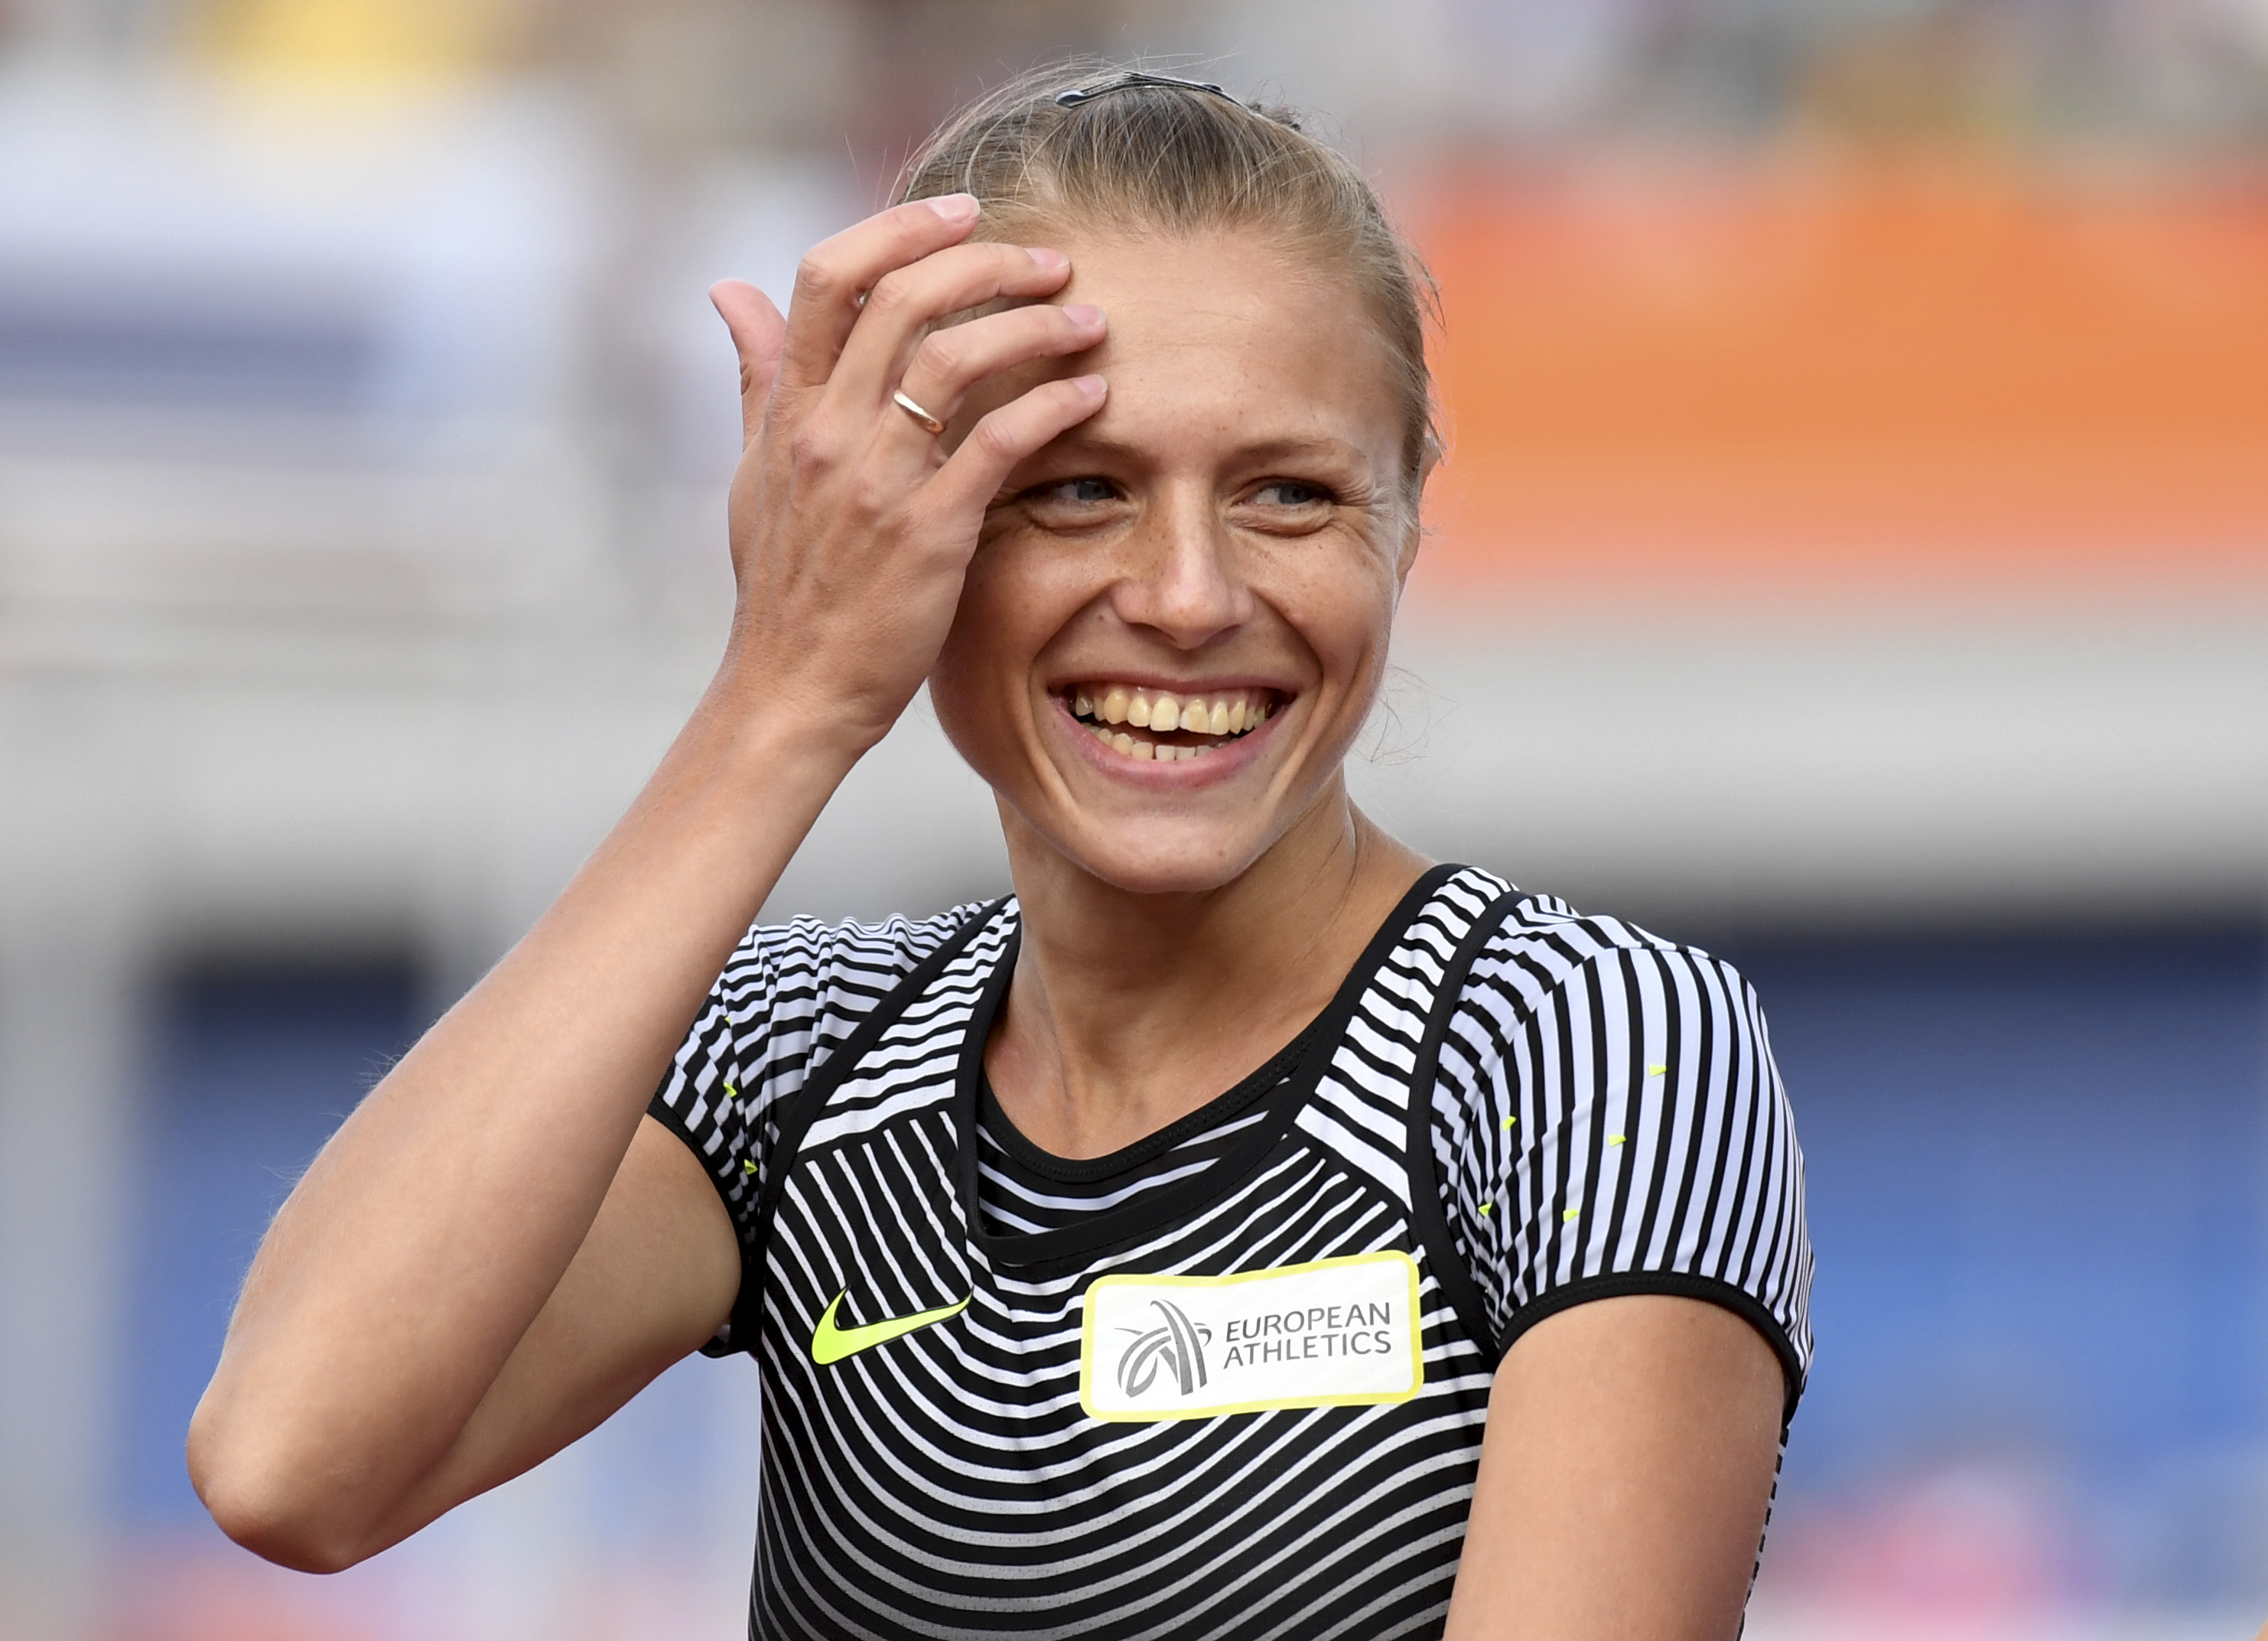 Russian doping whistleblower Yuliya Stepanova who runs under a neutral flag smiles before competing in a women's 800m heat during the European Athletics Championships in Amsterdam, the Netherlands, Wednesday, July 6, 2016. (AP Photo/Geert Vanden Wijngaert